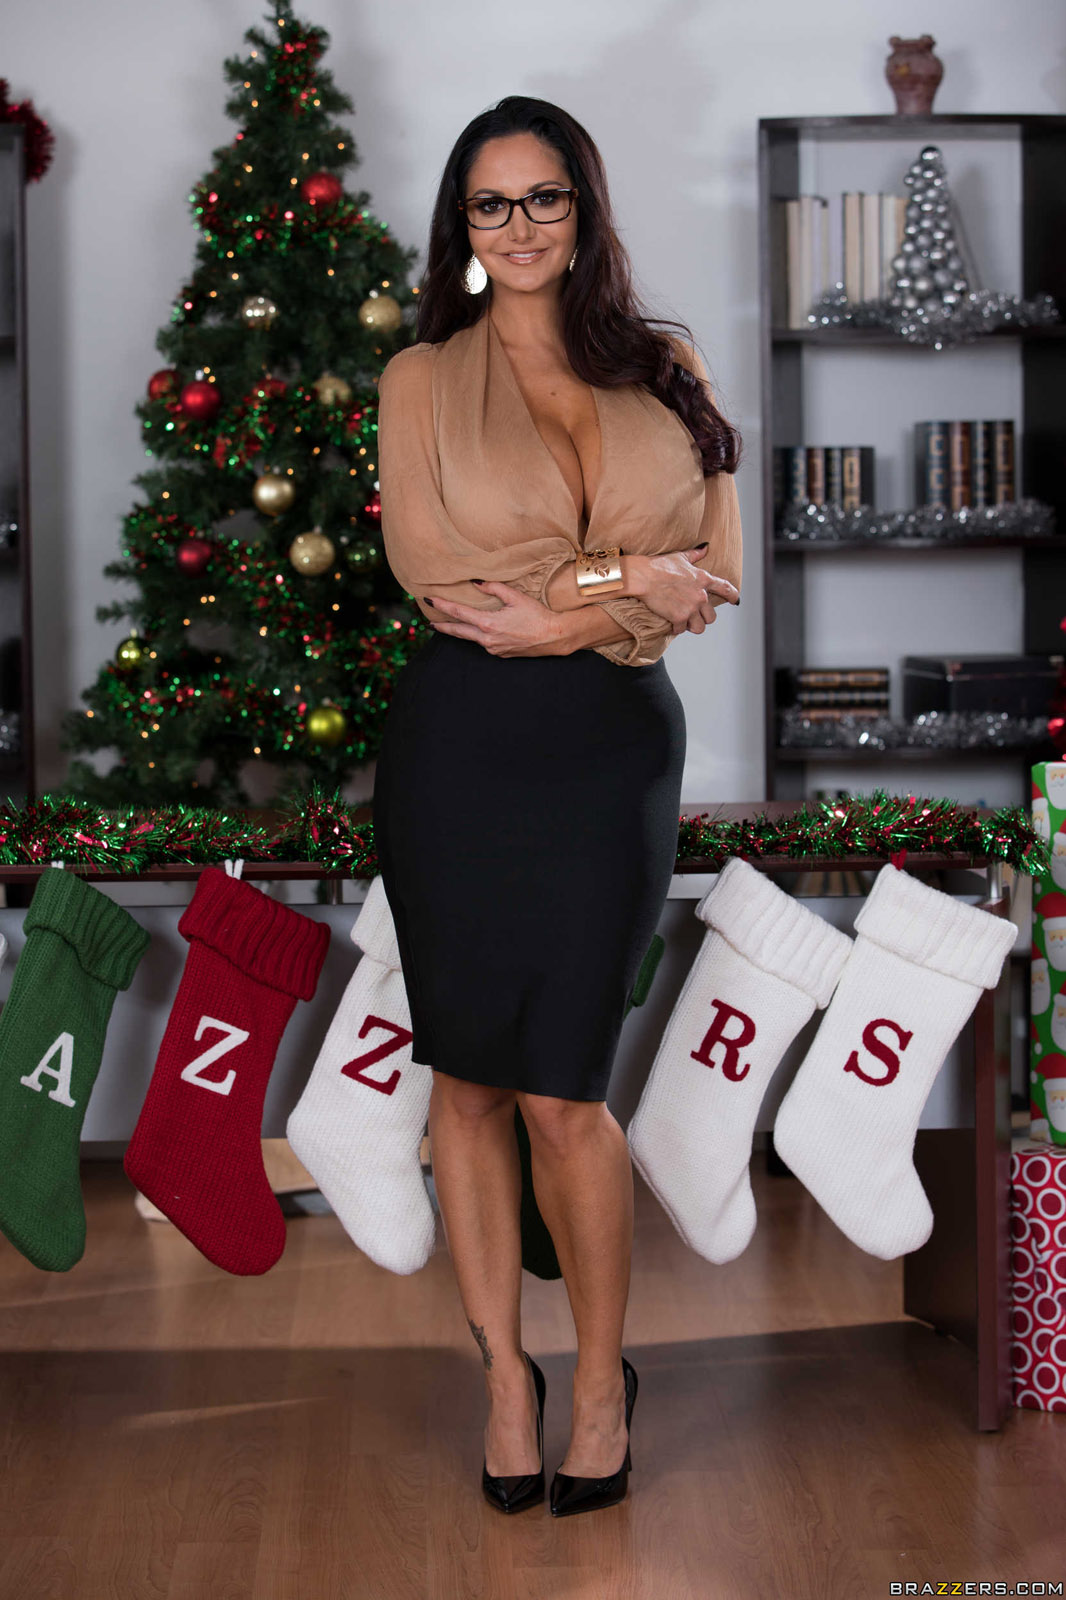 ava addams office play christmas brazzers foxhq